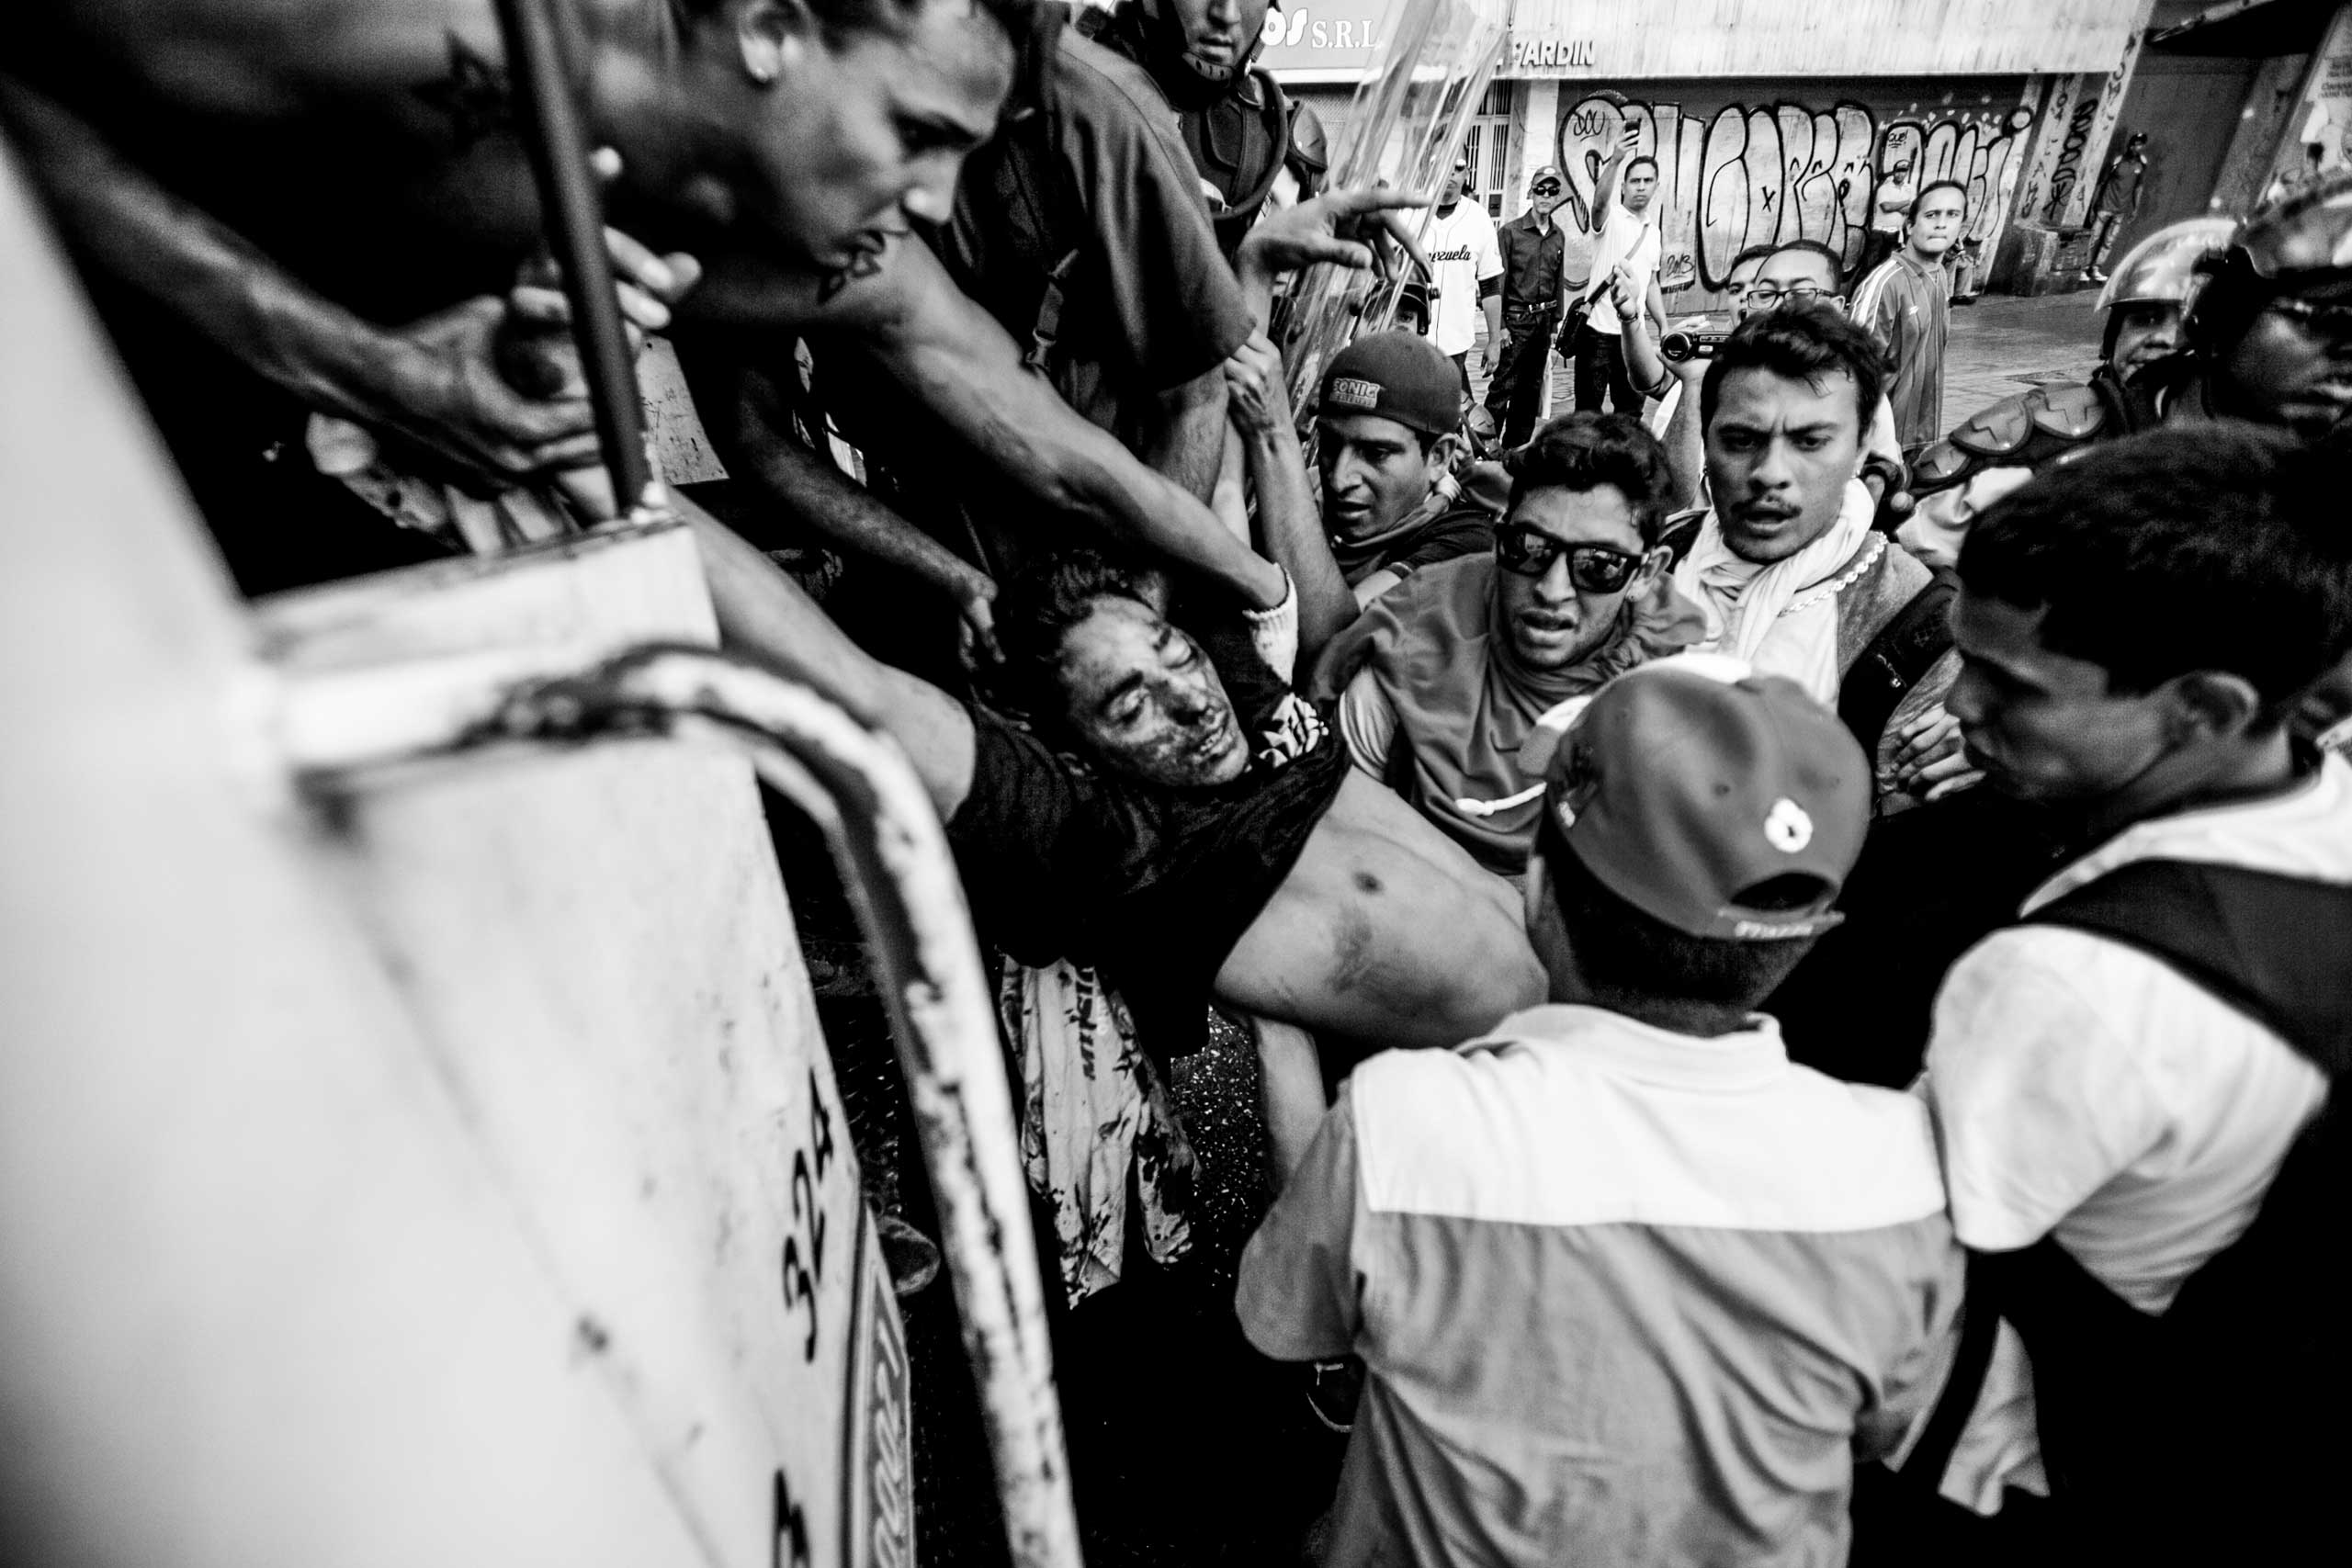 Student demonstrator Bassil Da Costa, who was shot in the head, is carried to a police vehicle after clashes broke out between opposition protesters and security forces. Caracas, February 2014.